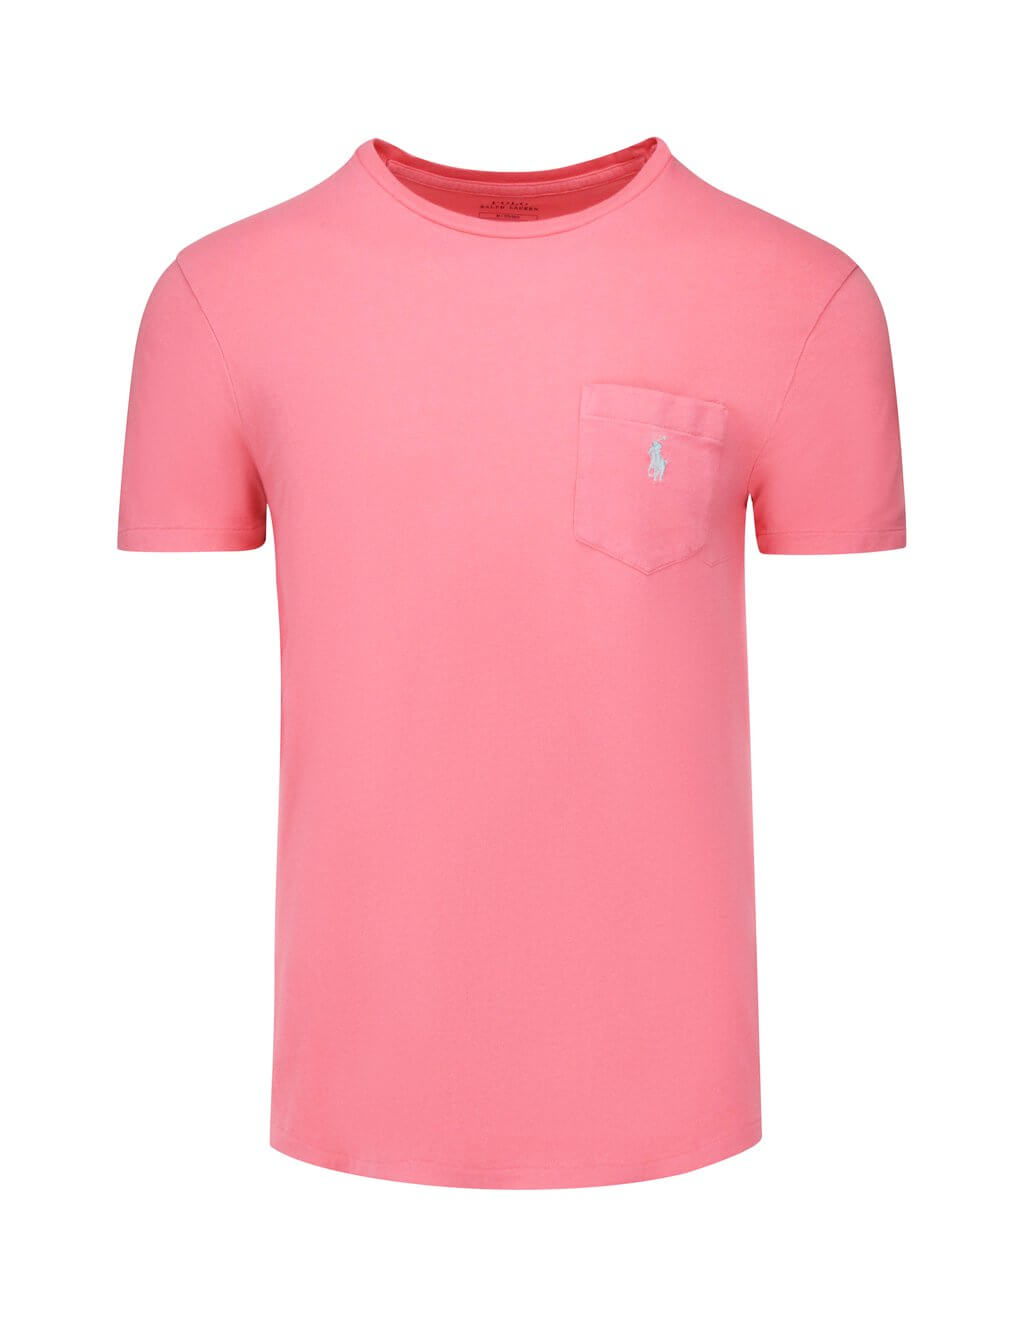 Polo Ralph Lauren Men's Giulio Fashion Pink Custom Slim Fit Pocket T-Shirt 710671501017